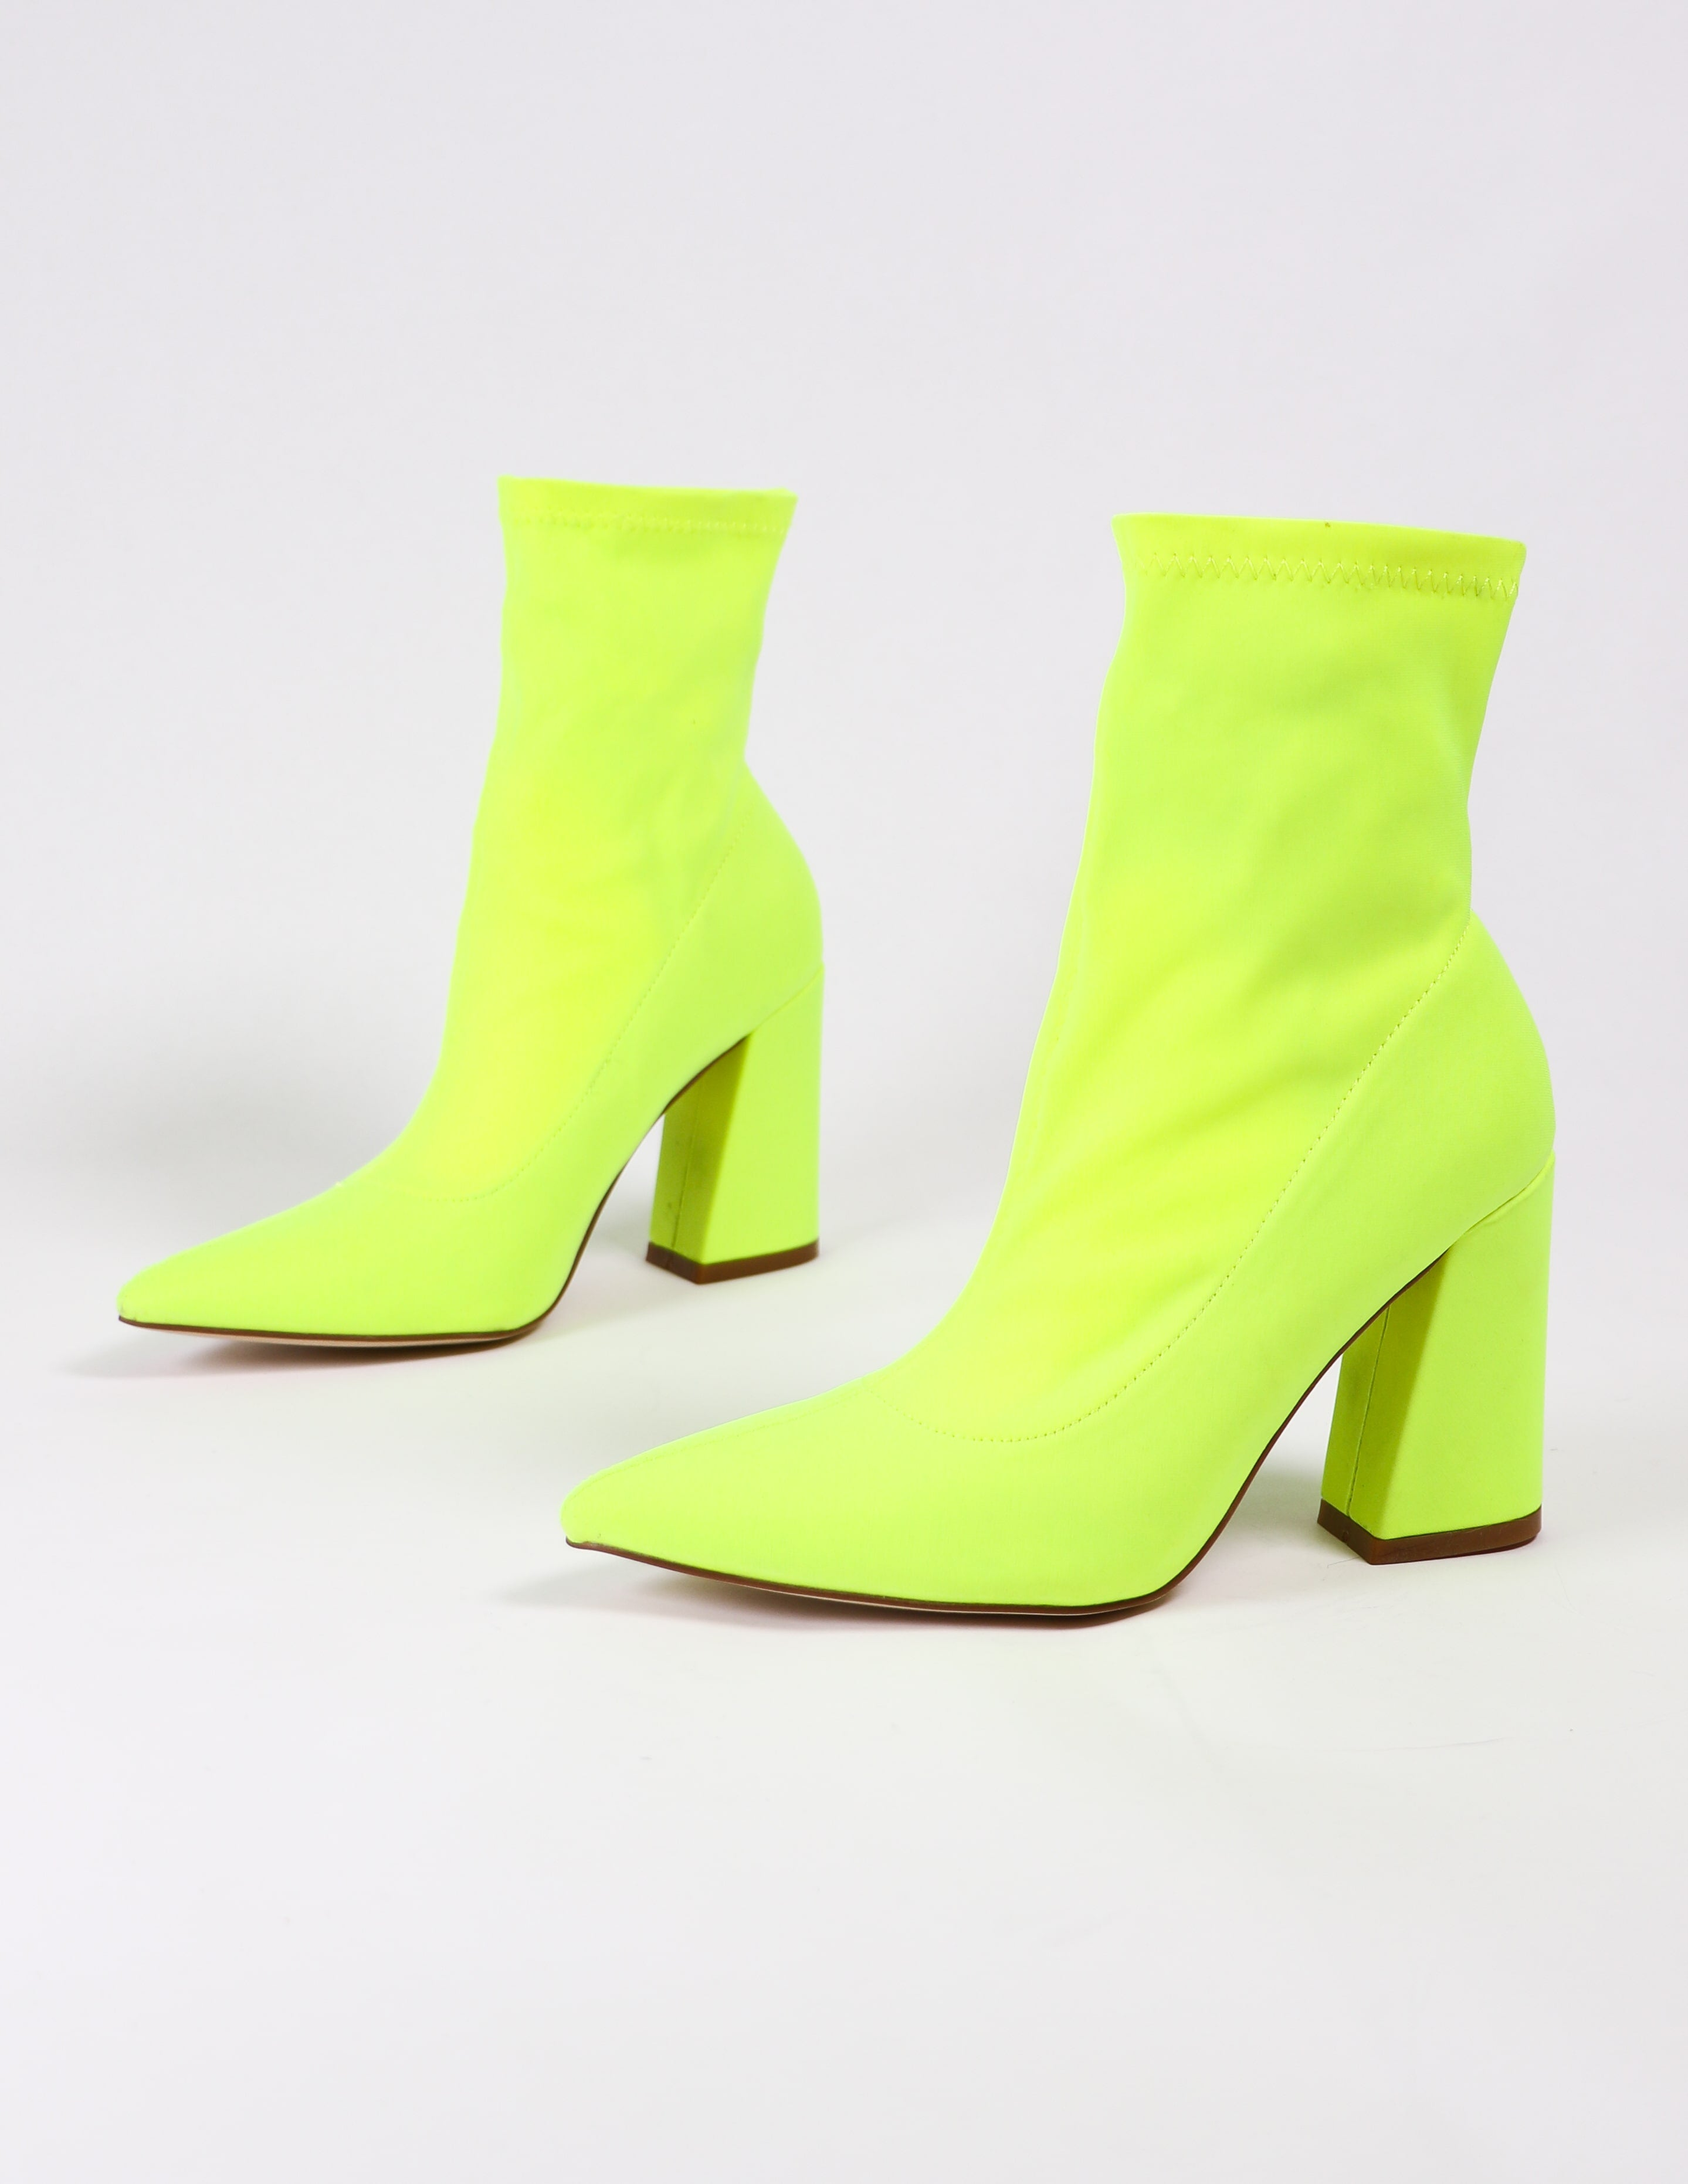 highlight of my life lime green booties on white background